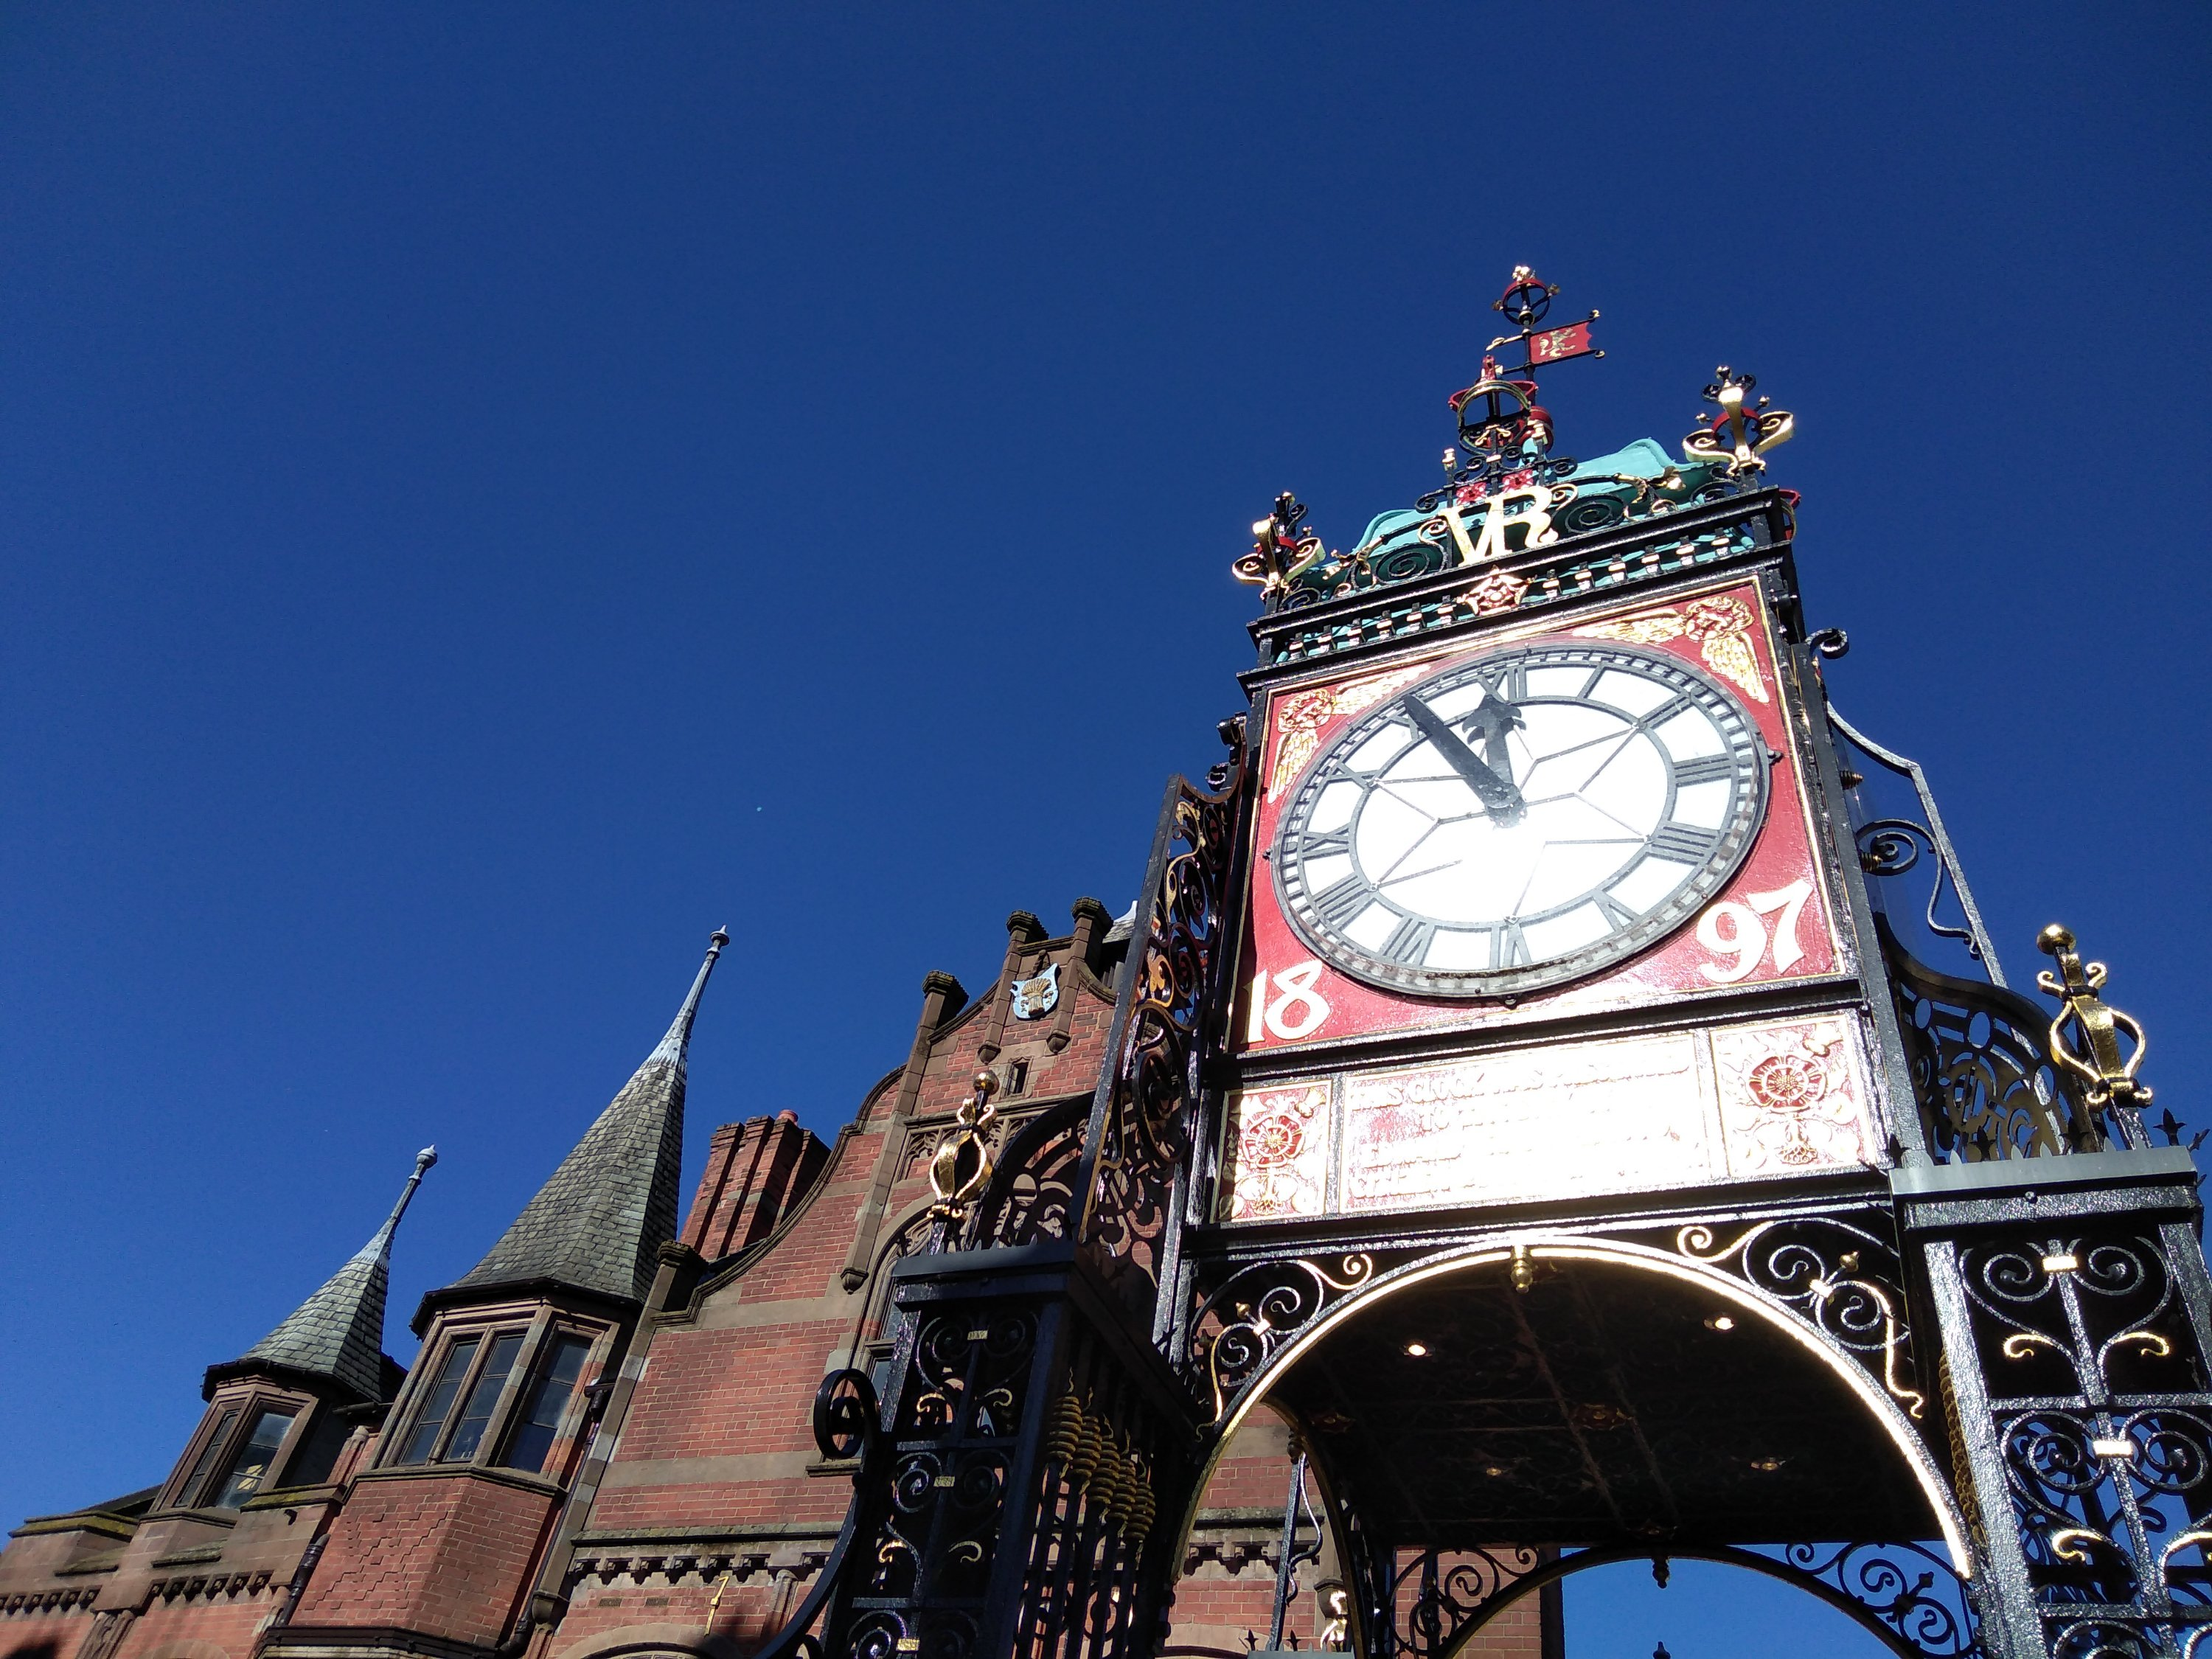 The Eastgate Clock in Chester